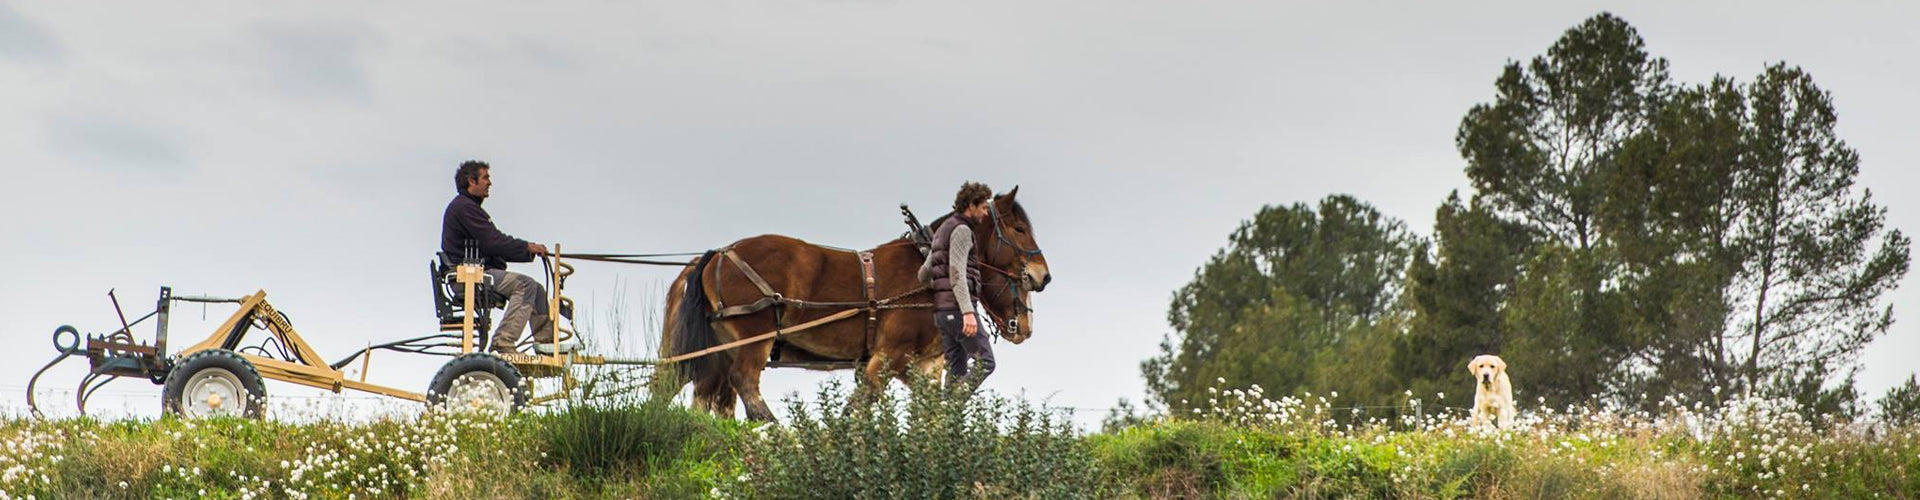 Pepe Raventós tending his vineyards with horse-drawn cultivator